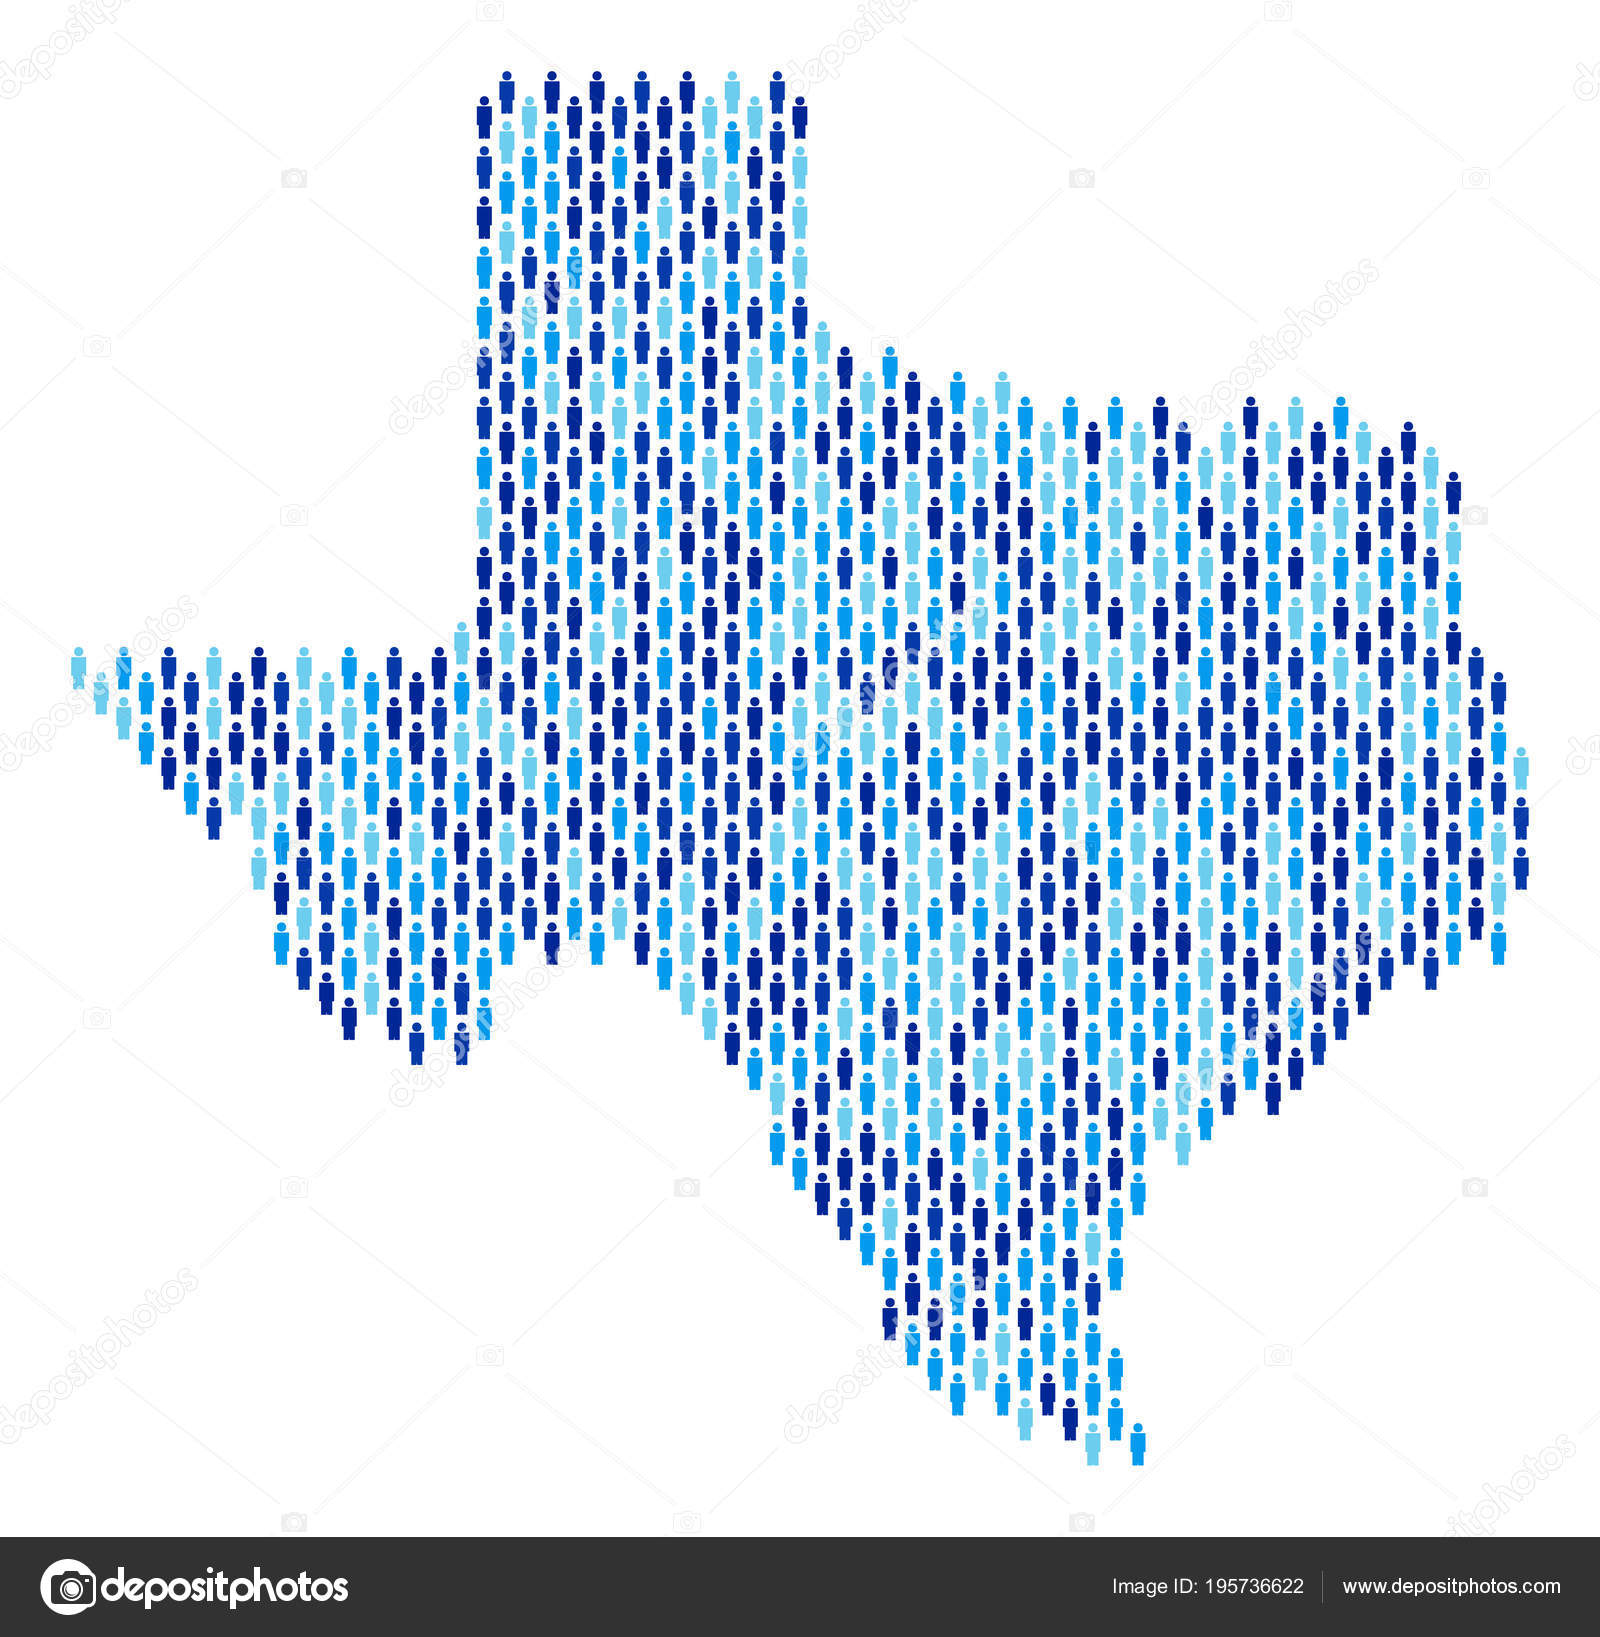 Population Map Of Texas.Texas Map Population People Stock Vector C Ahasoft 195736622